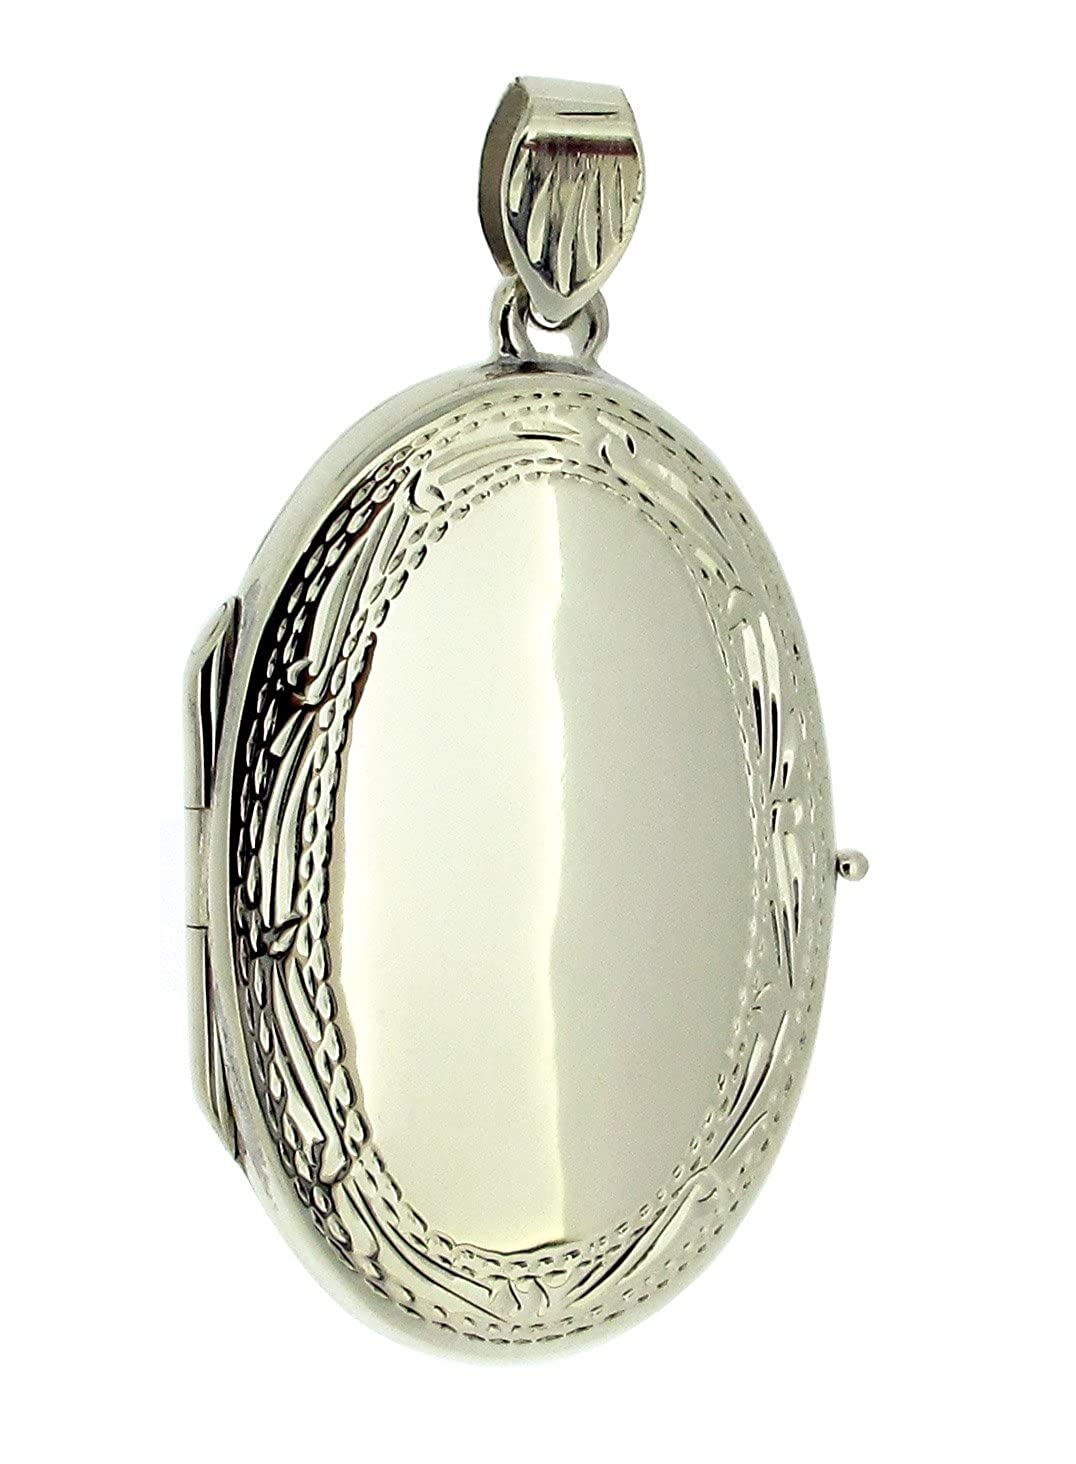 0.925 Sterling Silver Large Oval Locket Pendant In Presentation Gift Box Christopher James Of London SIL-LOCK-LGEOVAL-NOCHAIN